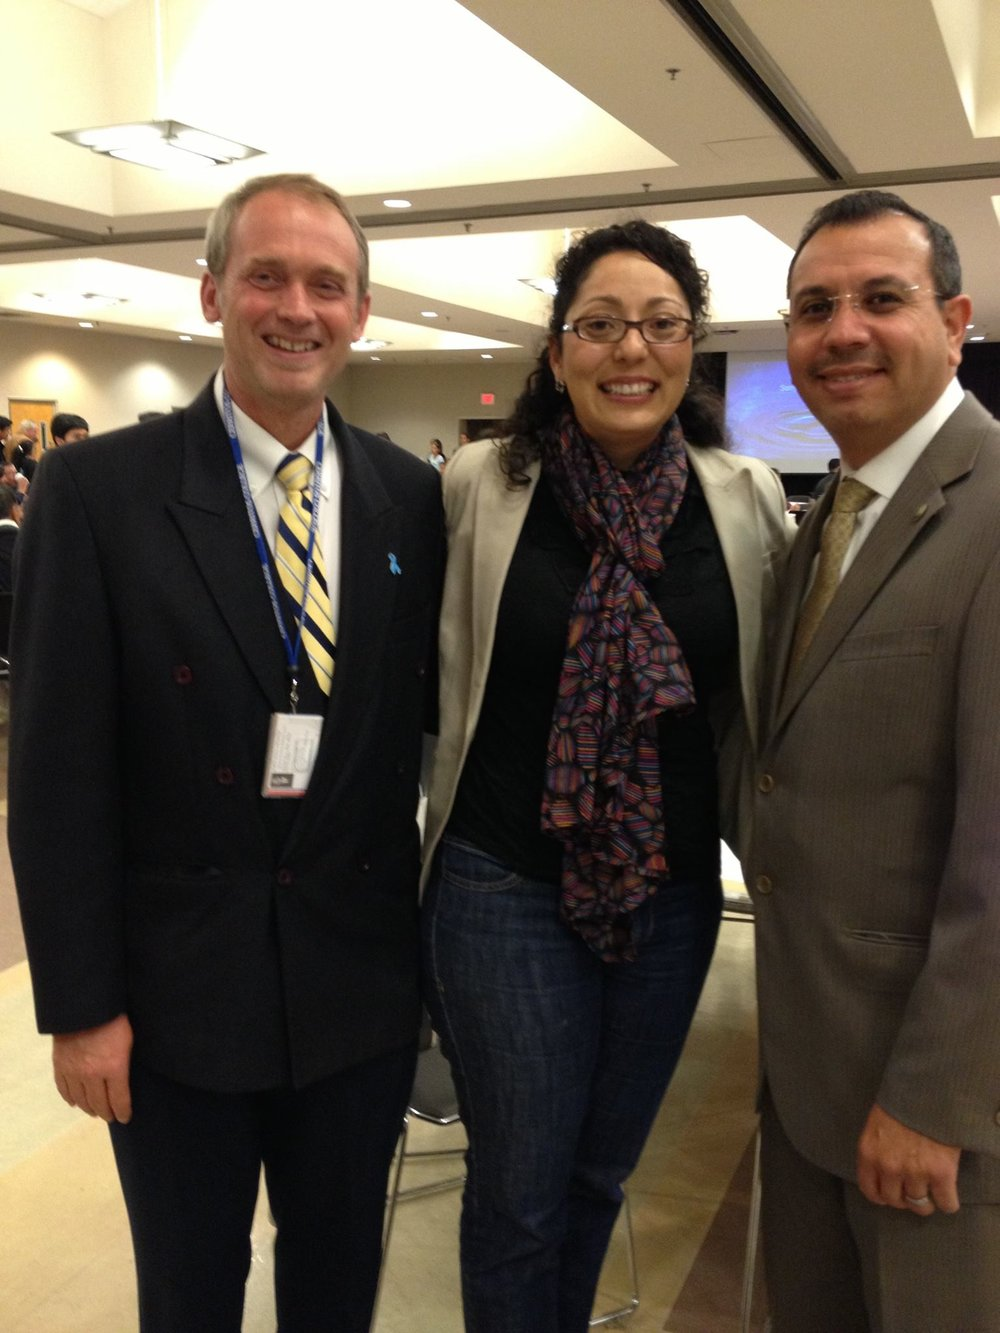 John Paul Drayer, Assemblymember Cristina Garcia and state Sen. Tony Mendoza.